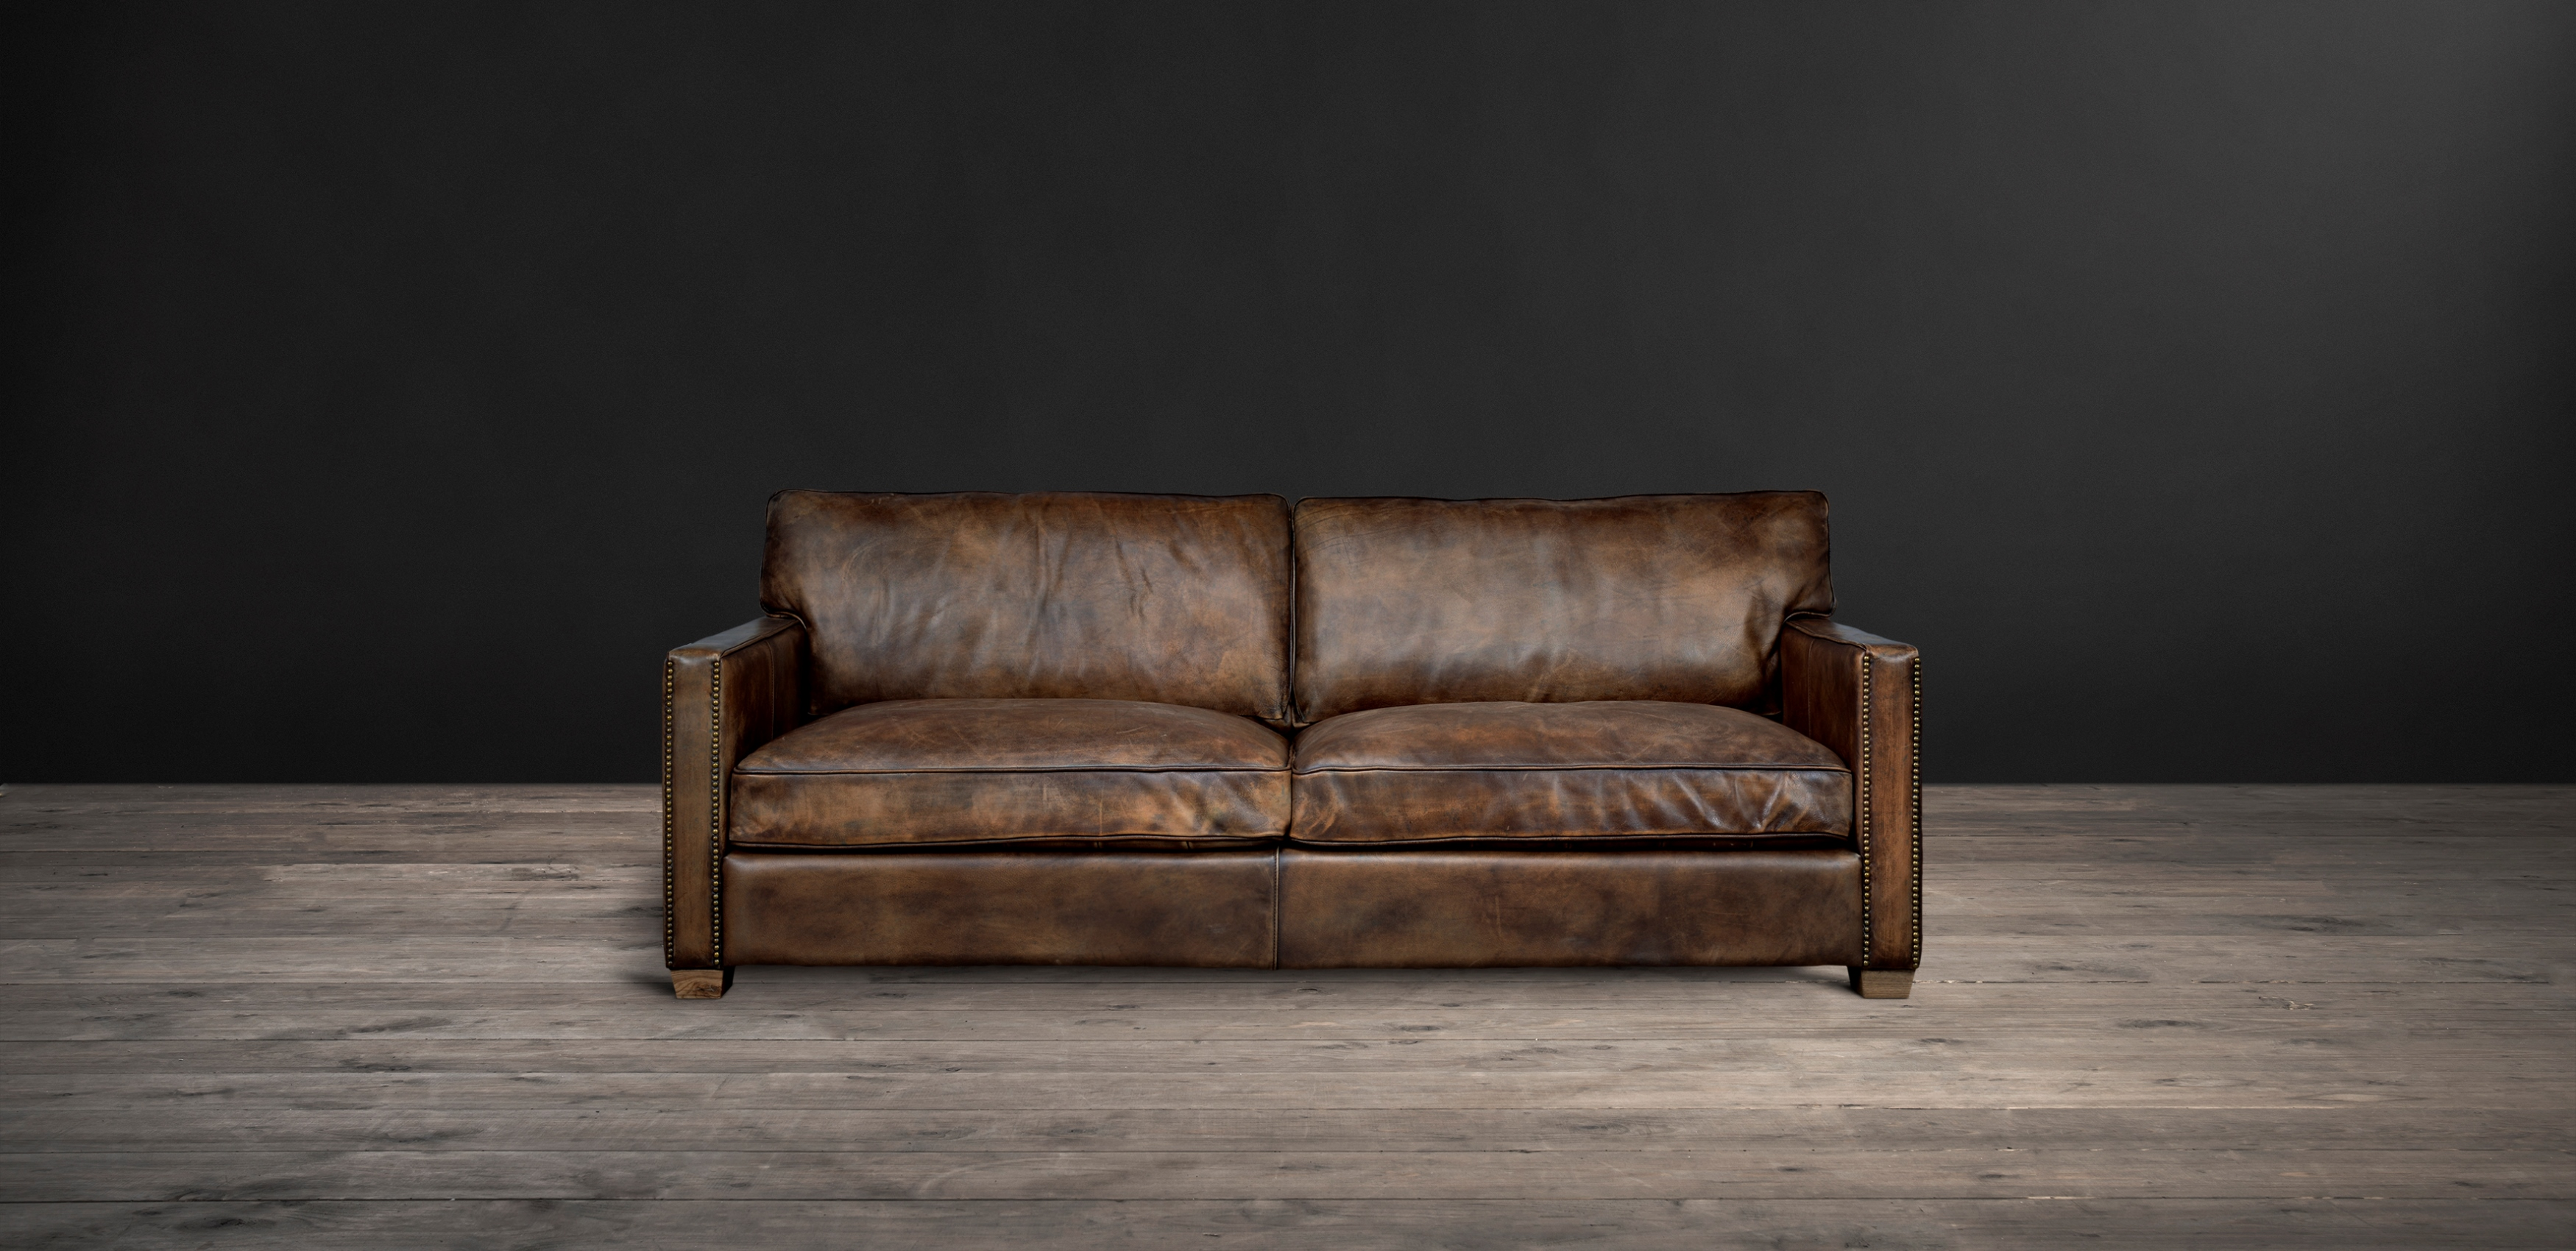 Timothy Oulton Classic Leather Sofa - Viscount William Leather Sofa from front